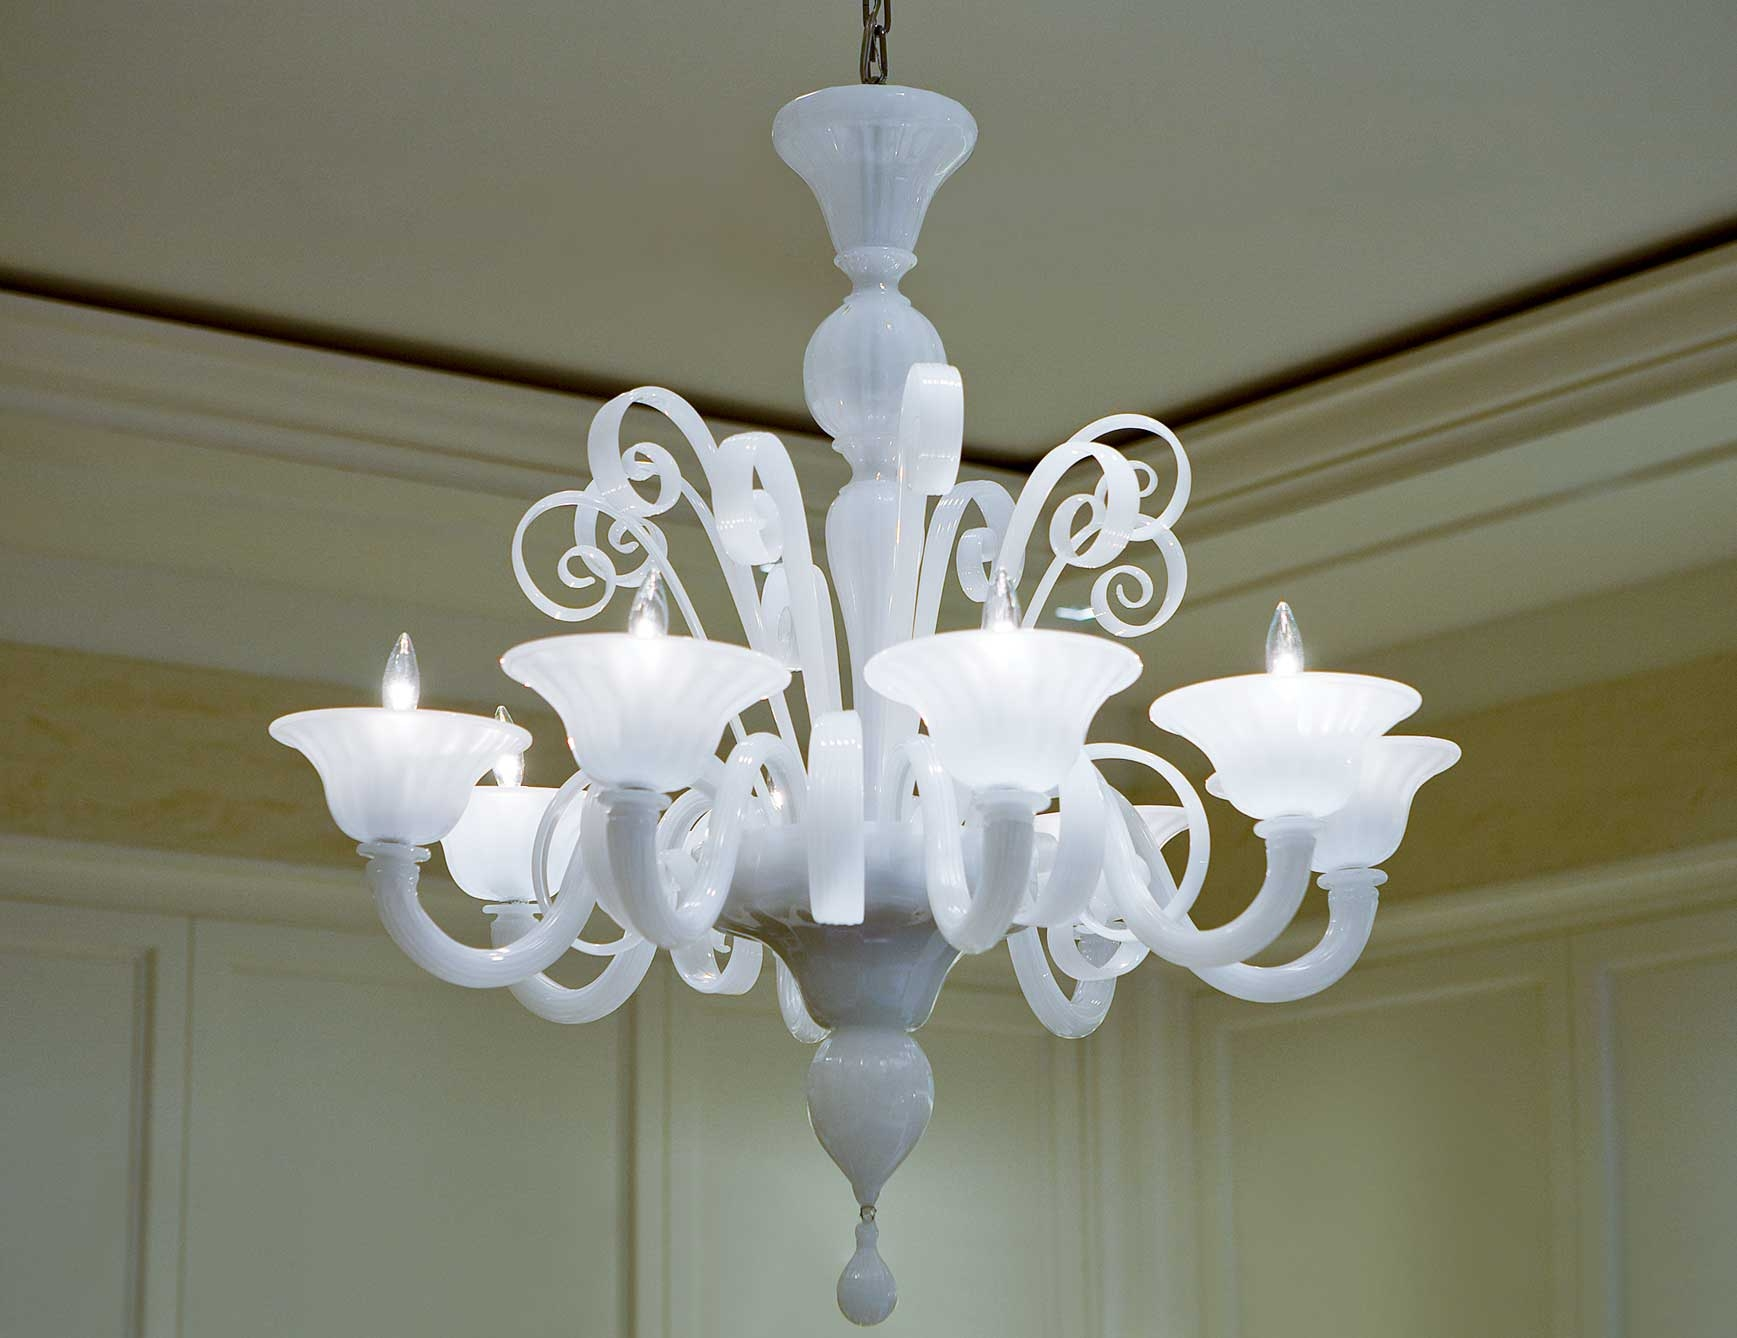 Popular Photo of Murano Chandelier Replica